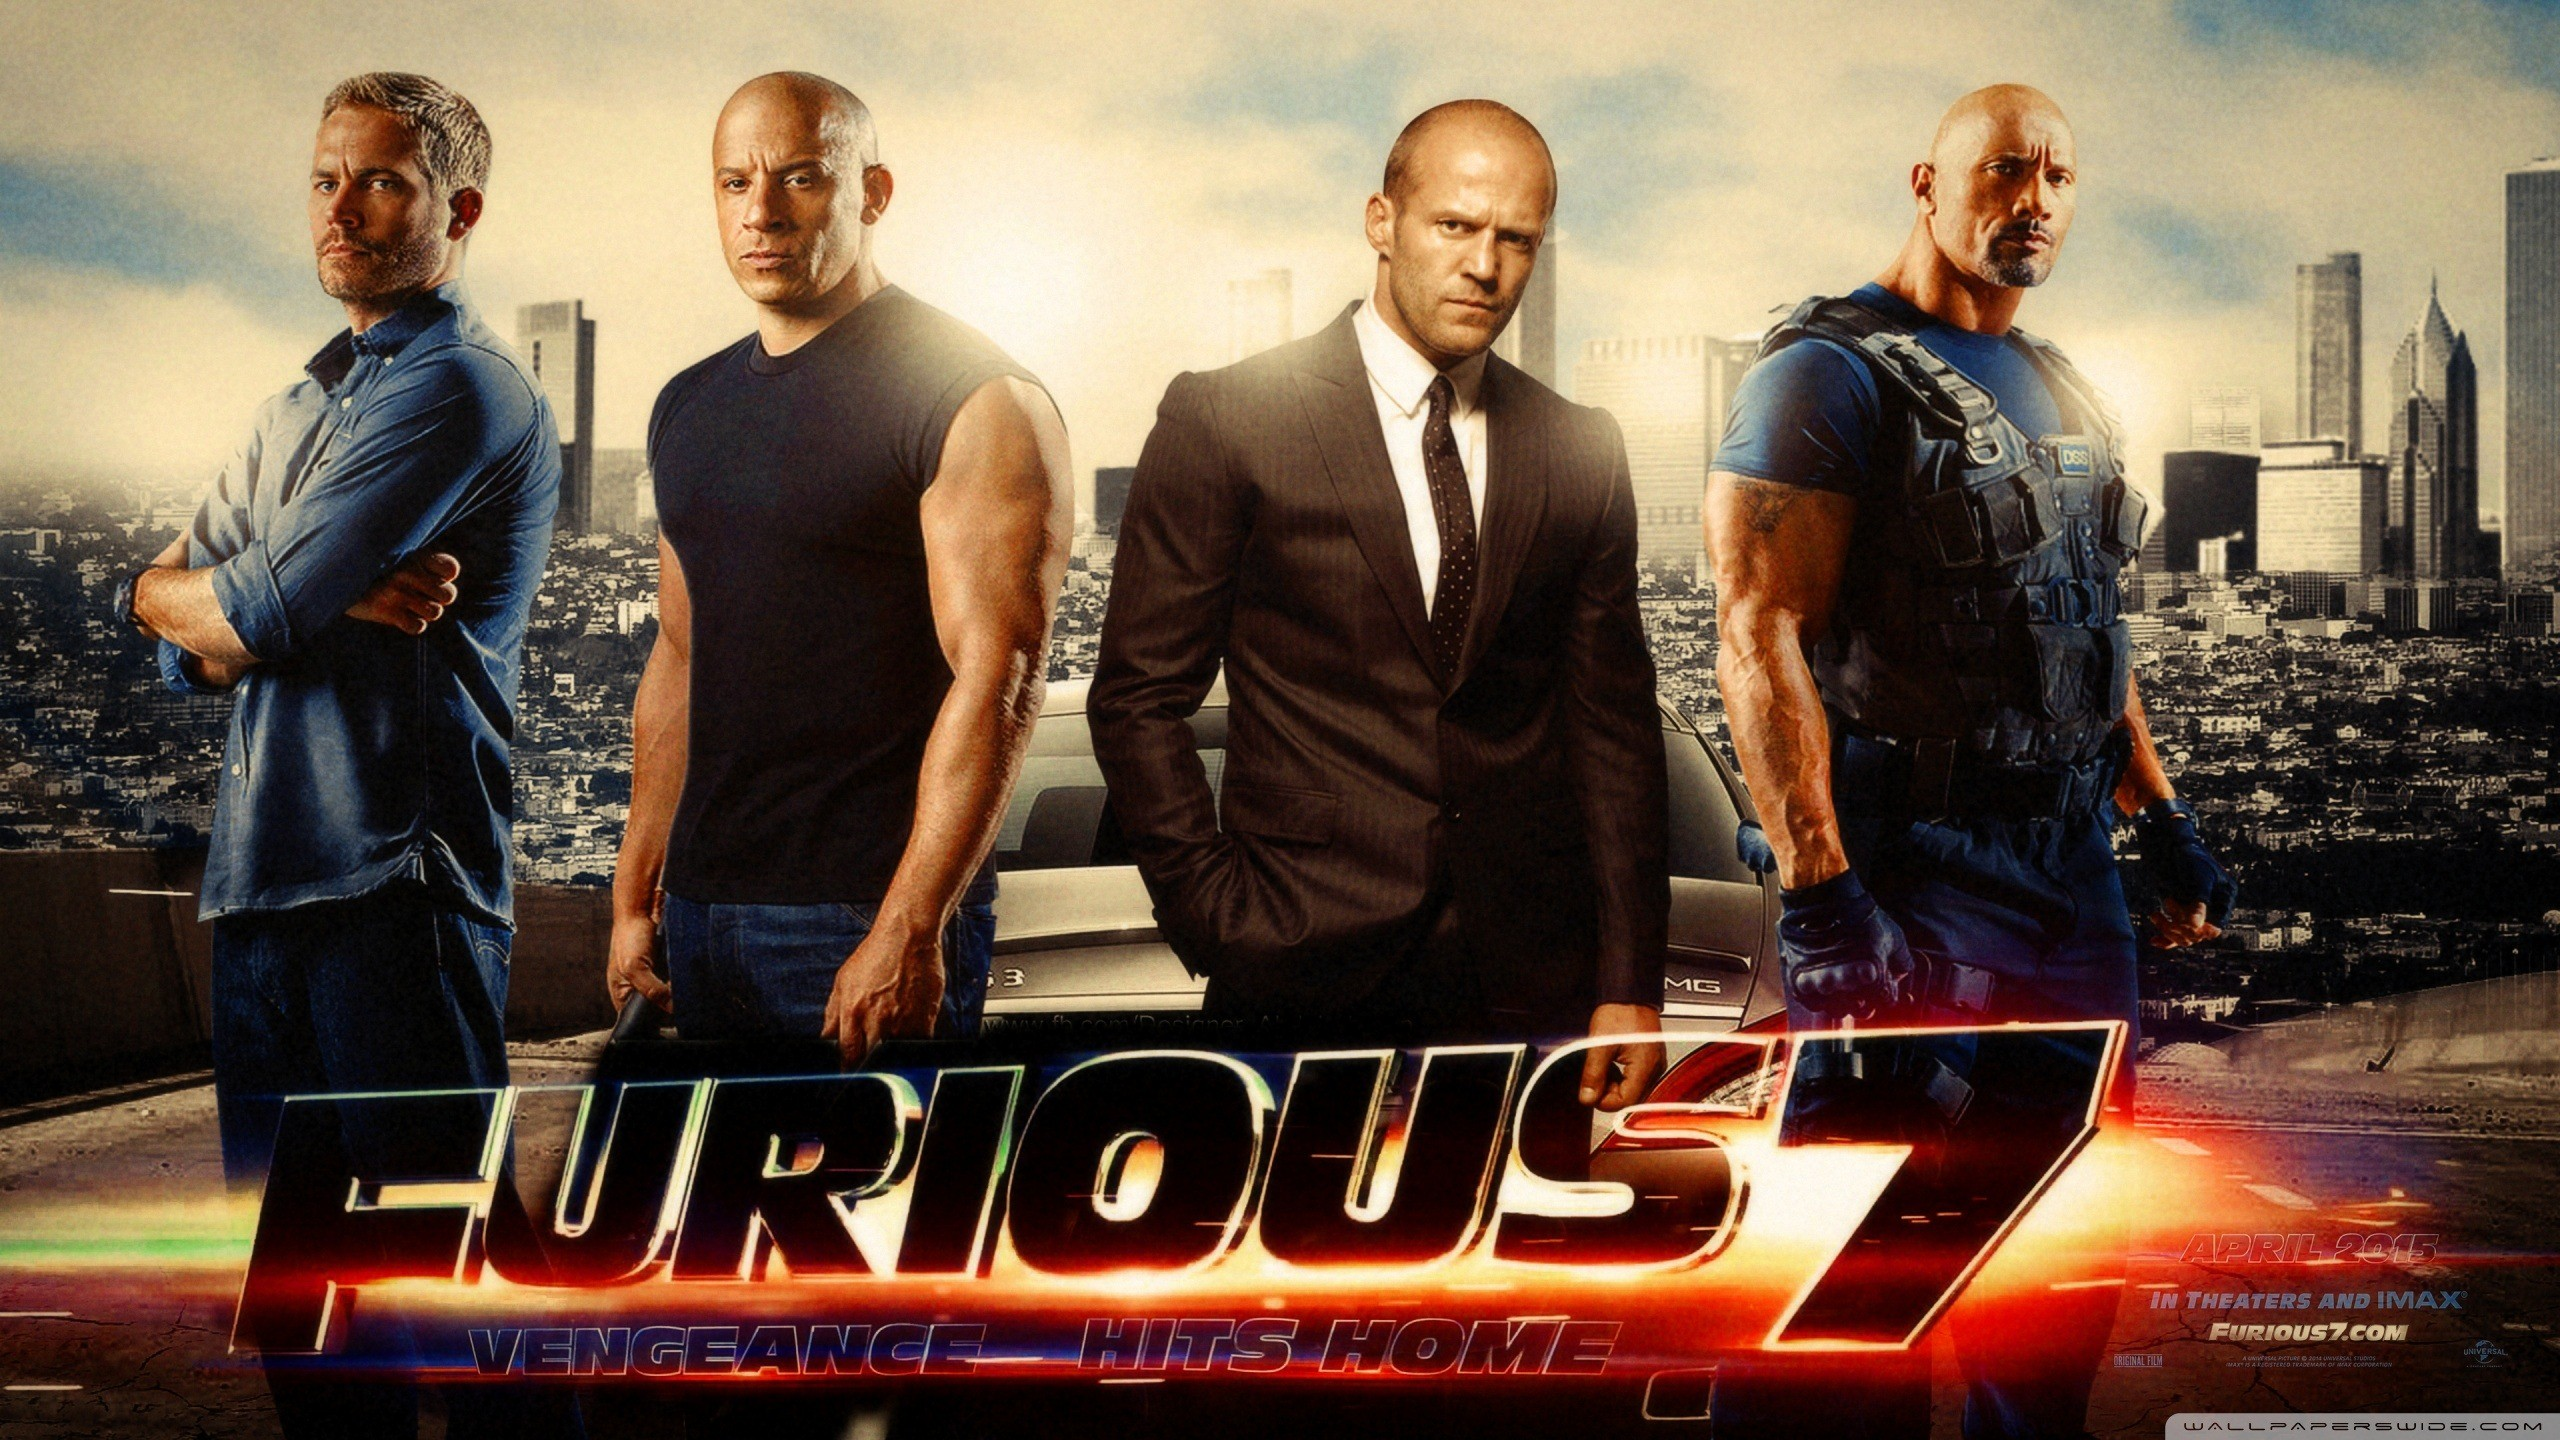 fast and furious 7 720p movie